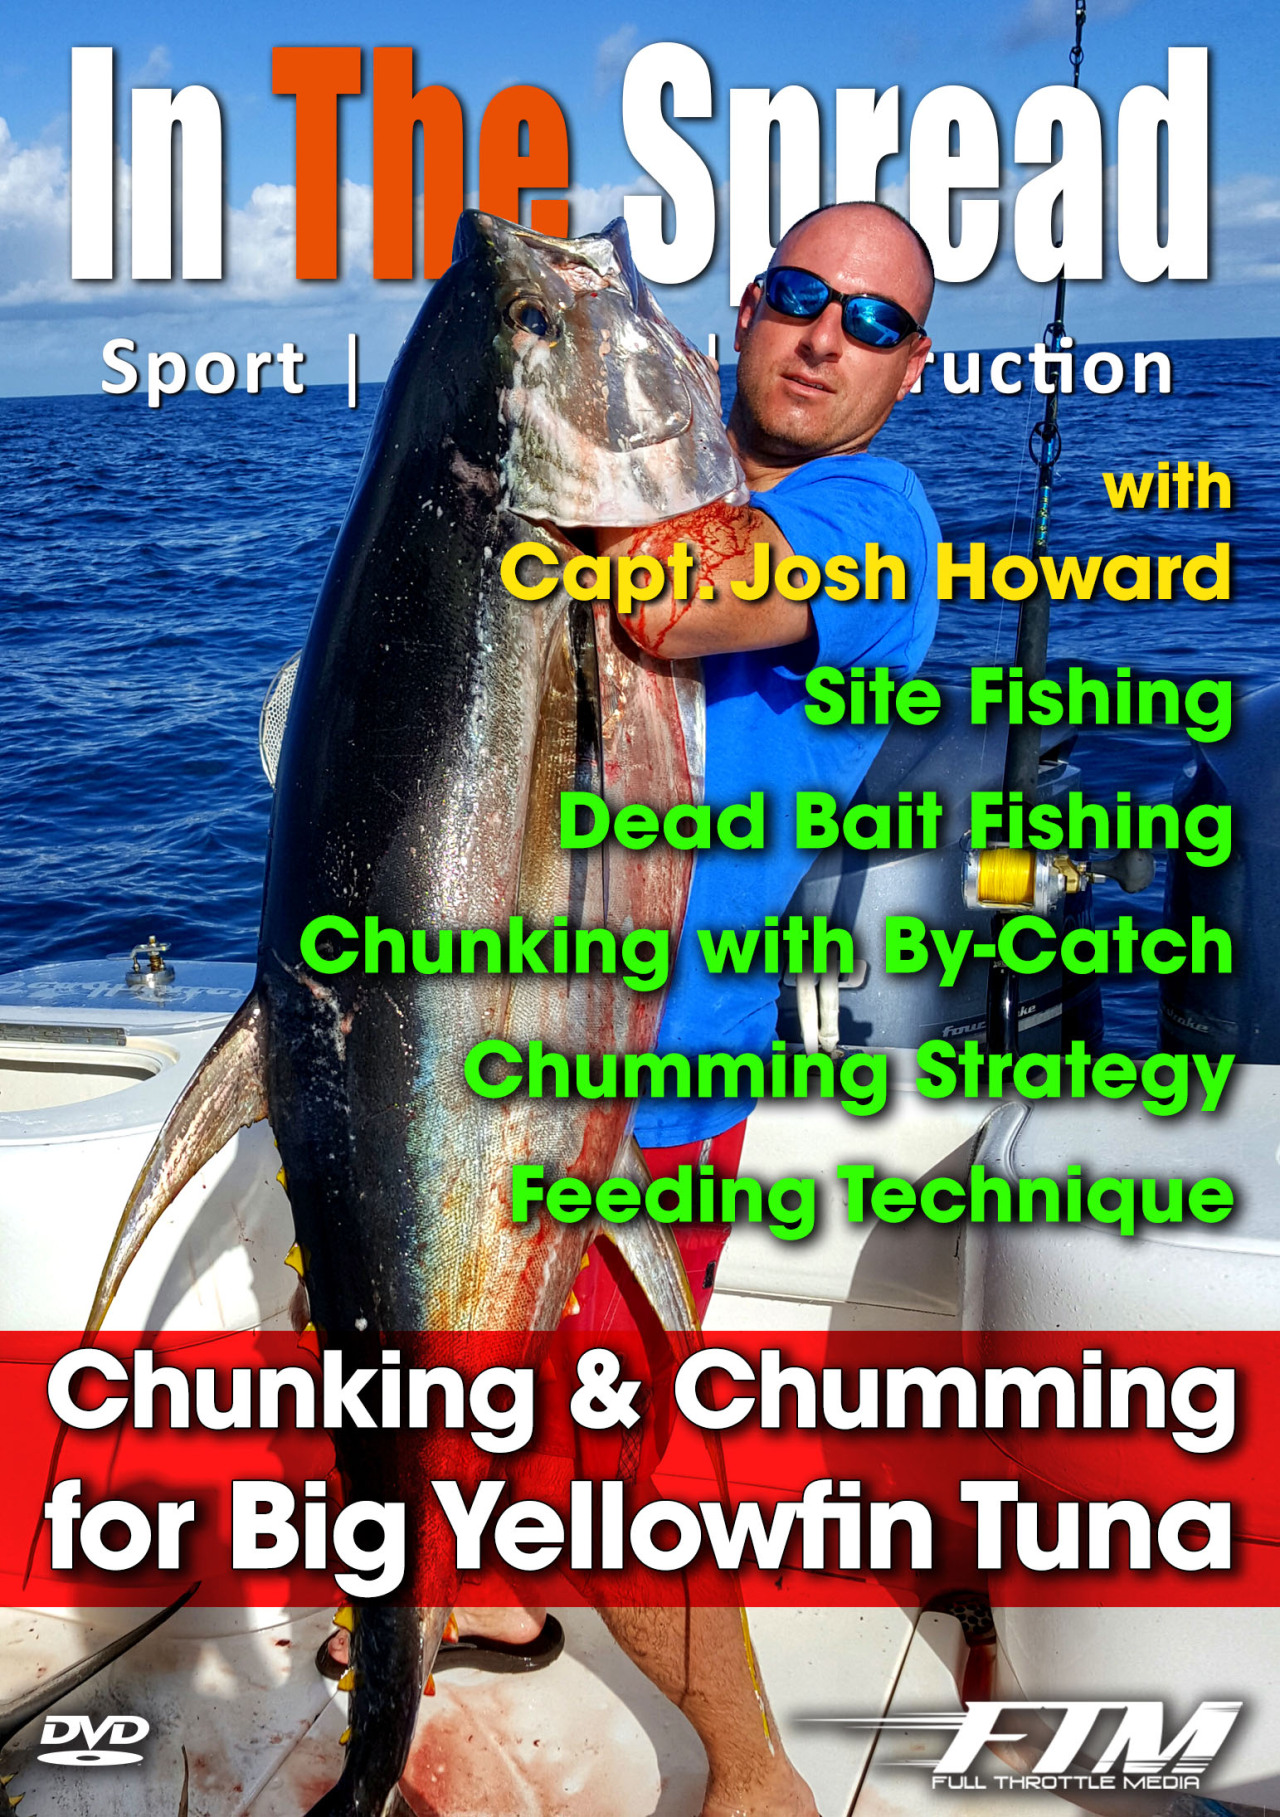 chumming chunking yellowfin tuna in the spread fishing video josh howard venice louisiana